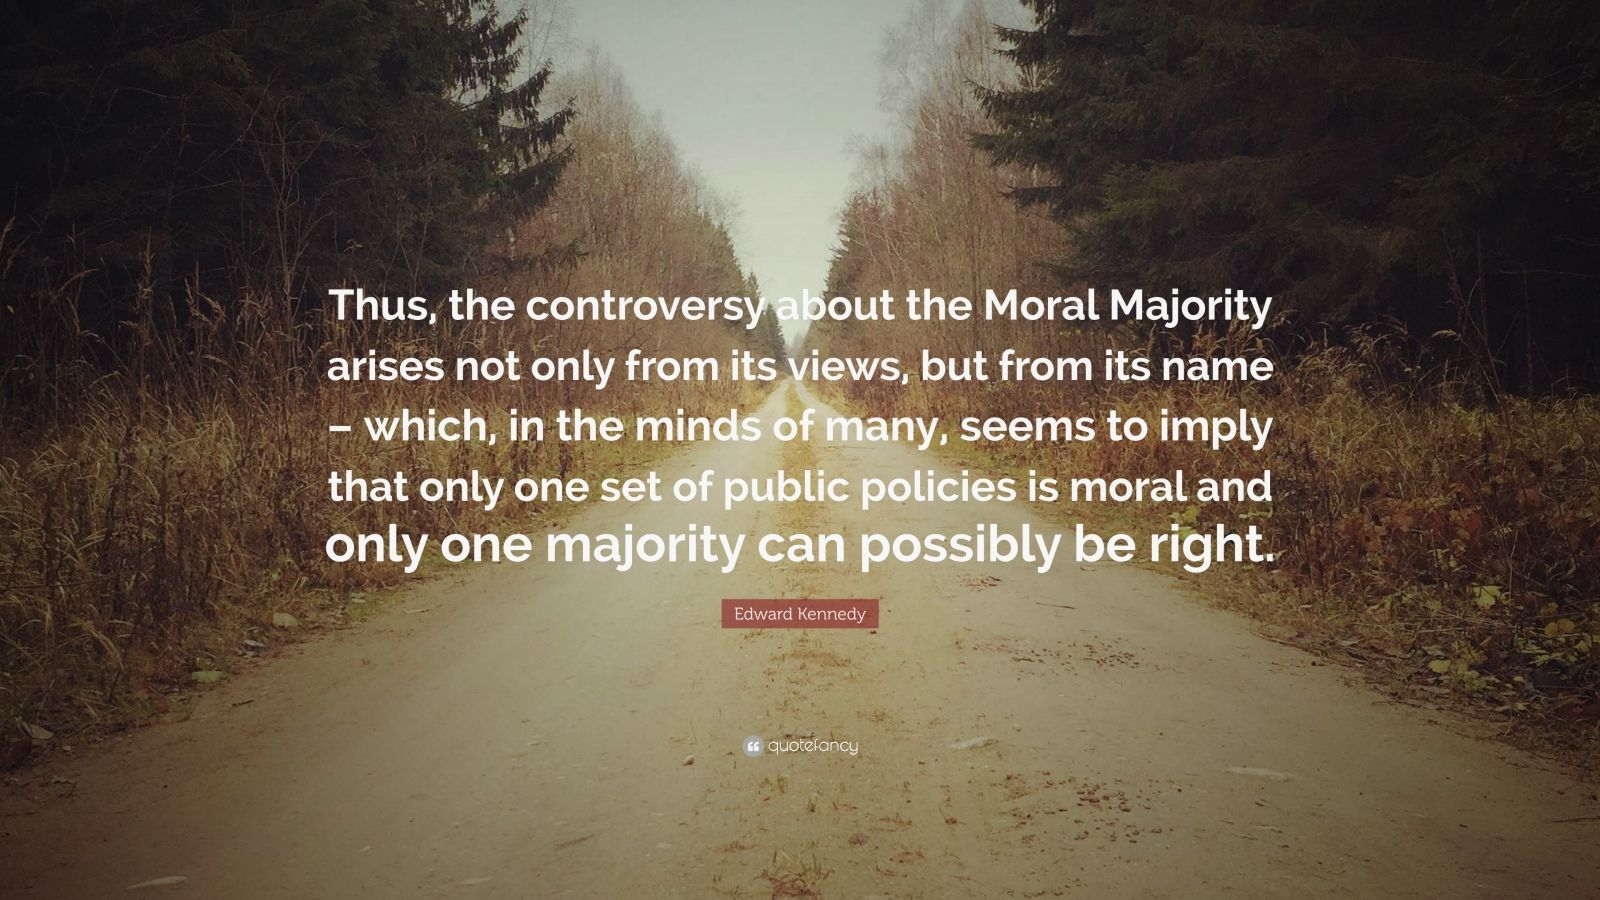 """Edward Kennedy Quote: """"Thus, the controversy about the Moral Majority arises not only from its views, but from its name – which, in the minds of many, seems to imply that only one set of public policies is moral and only one majority can possibly be right."""""""